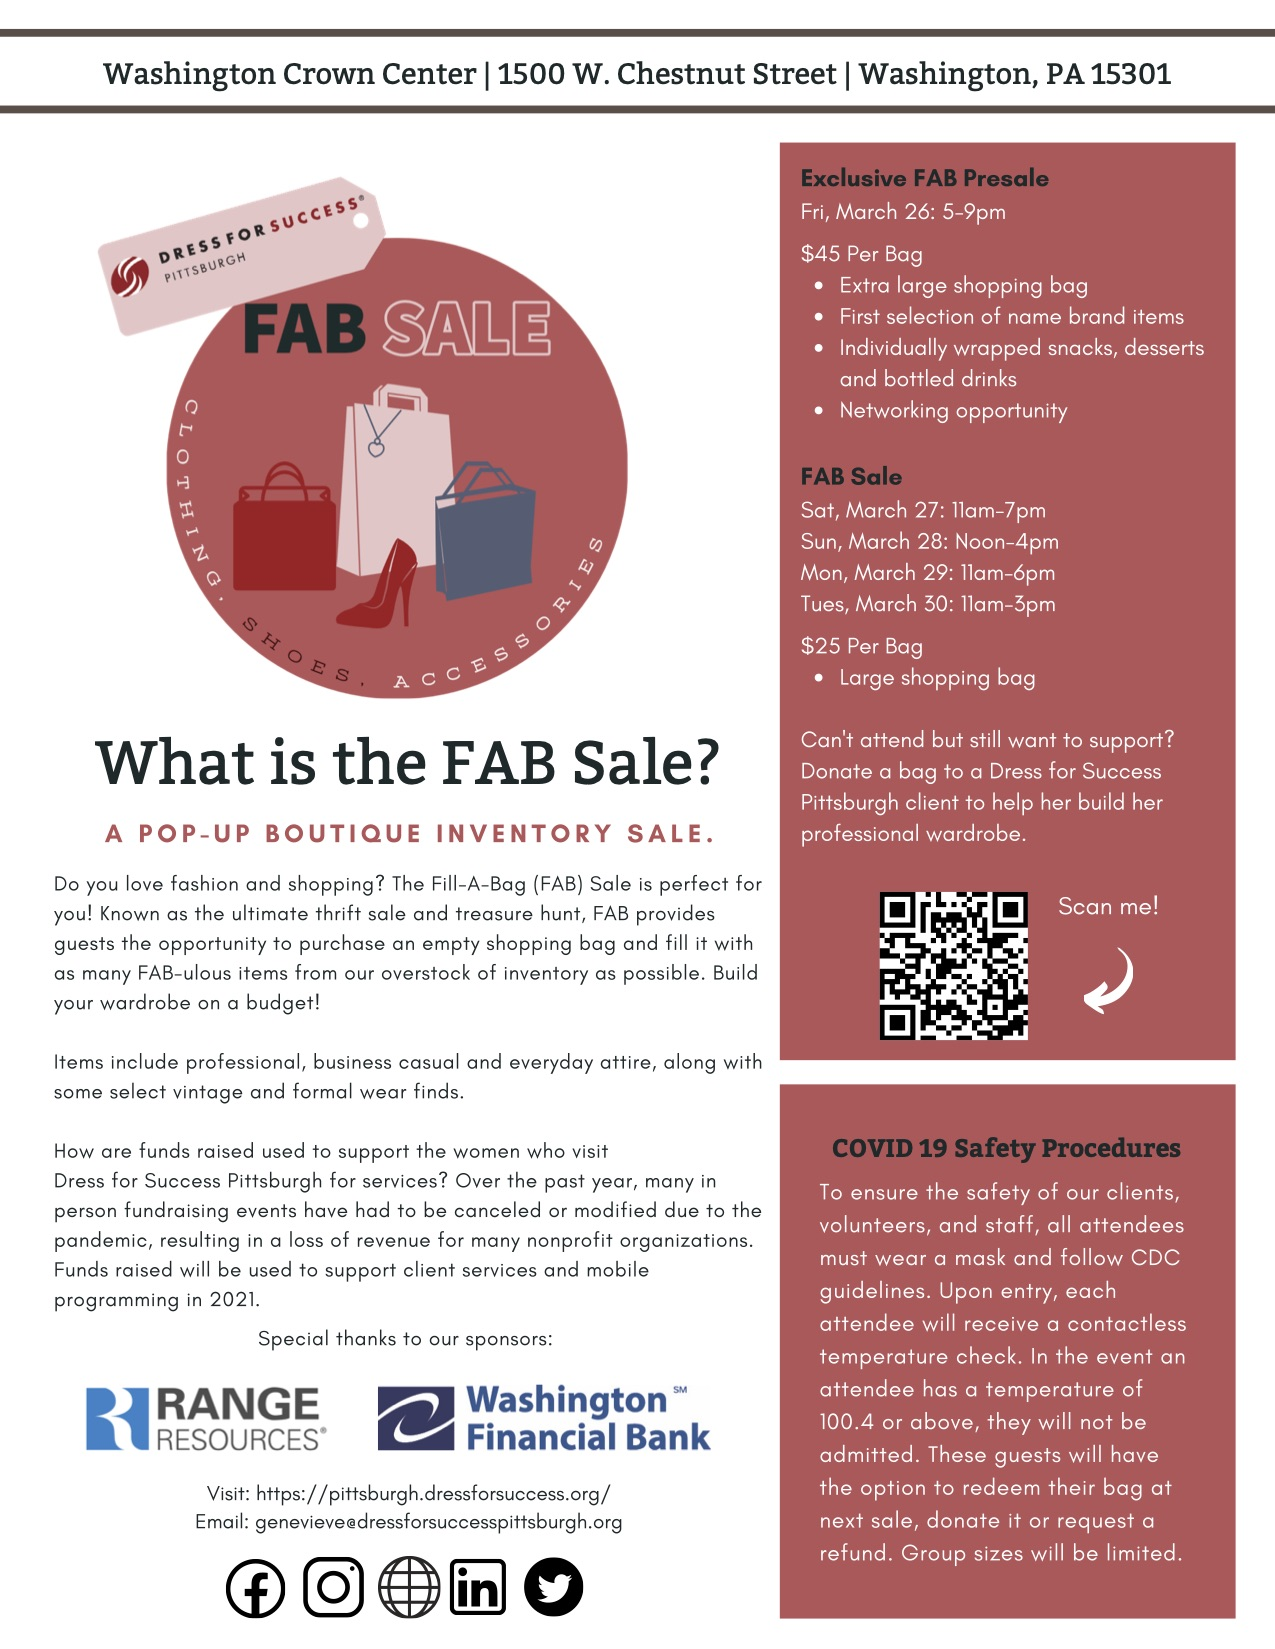 Information regarding the fill a bag sale at Washington Crown Center. There is also a QR code to scan for more information. Bags are 45 dollars a piece and the sale is March 27 through March 30. Saturday 11am-7pm Sunday 12pm-4pm Monday 11am-6pm Tuesday 11am-3pm